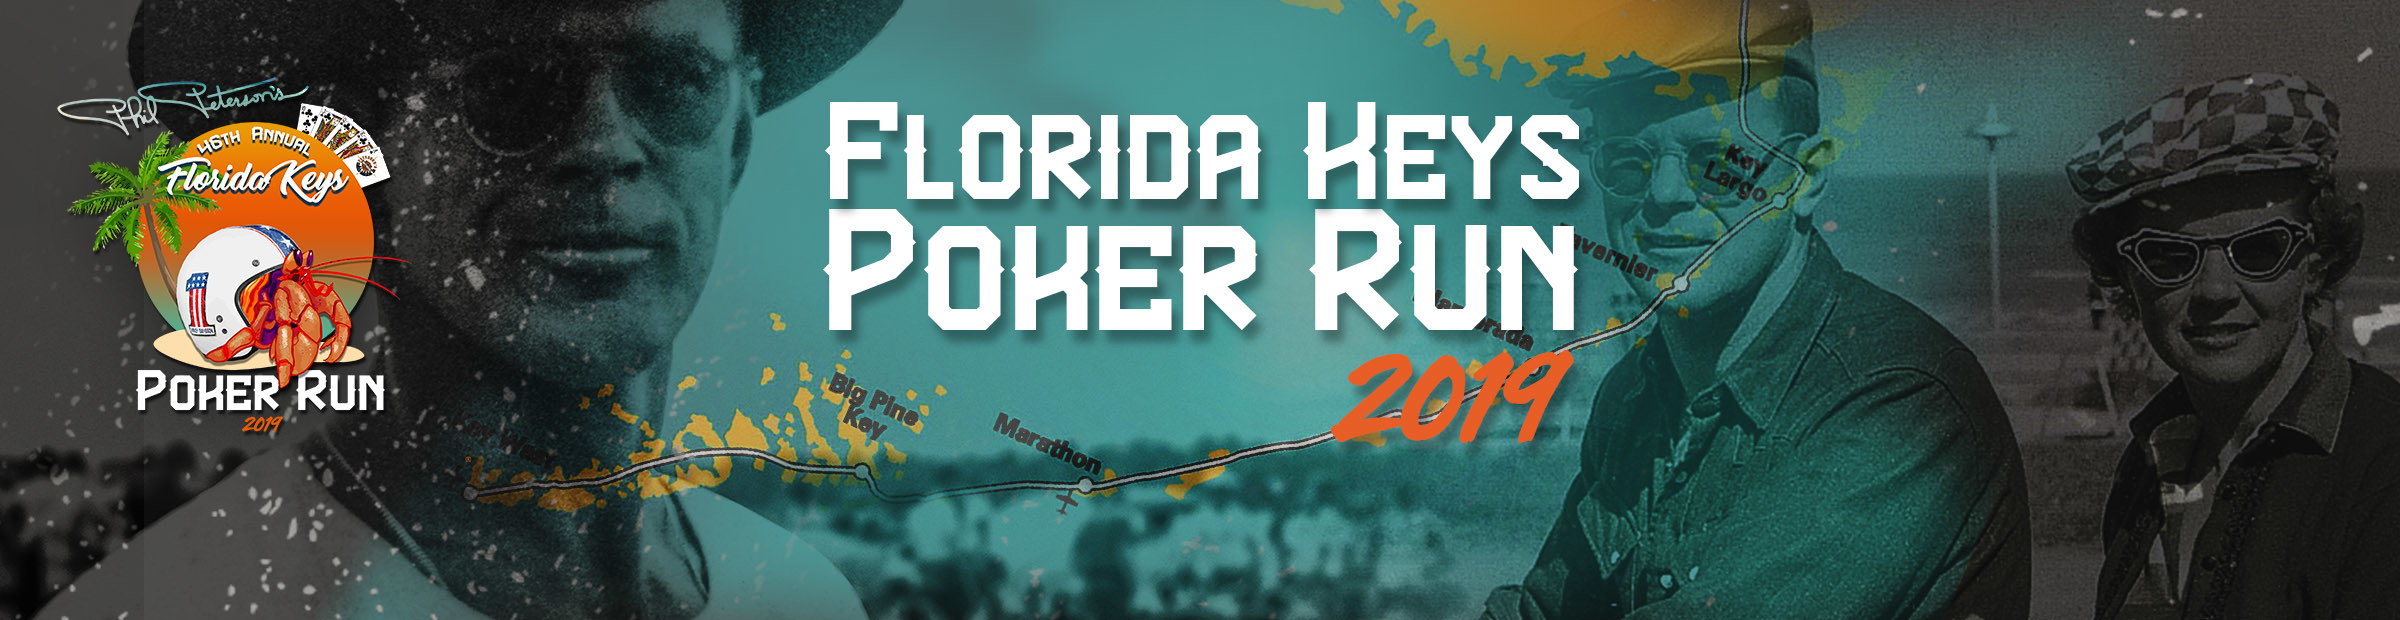 Phil Peterson's 46th Annual Florida Keys Poker Run 2019